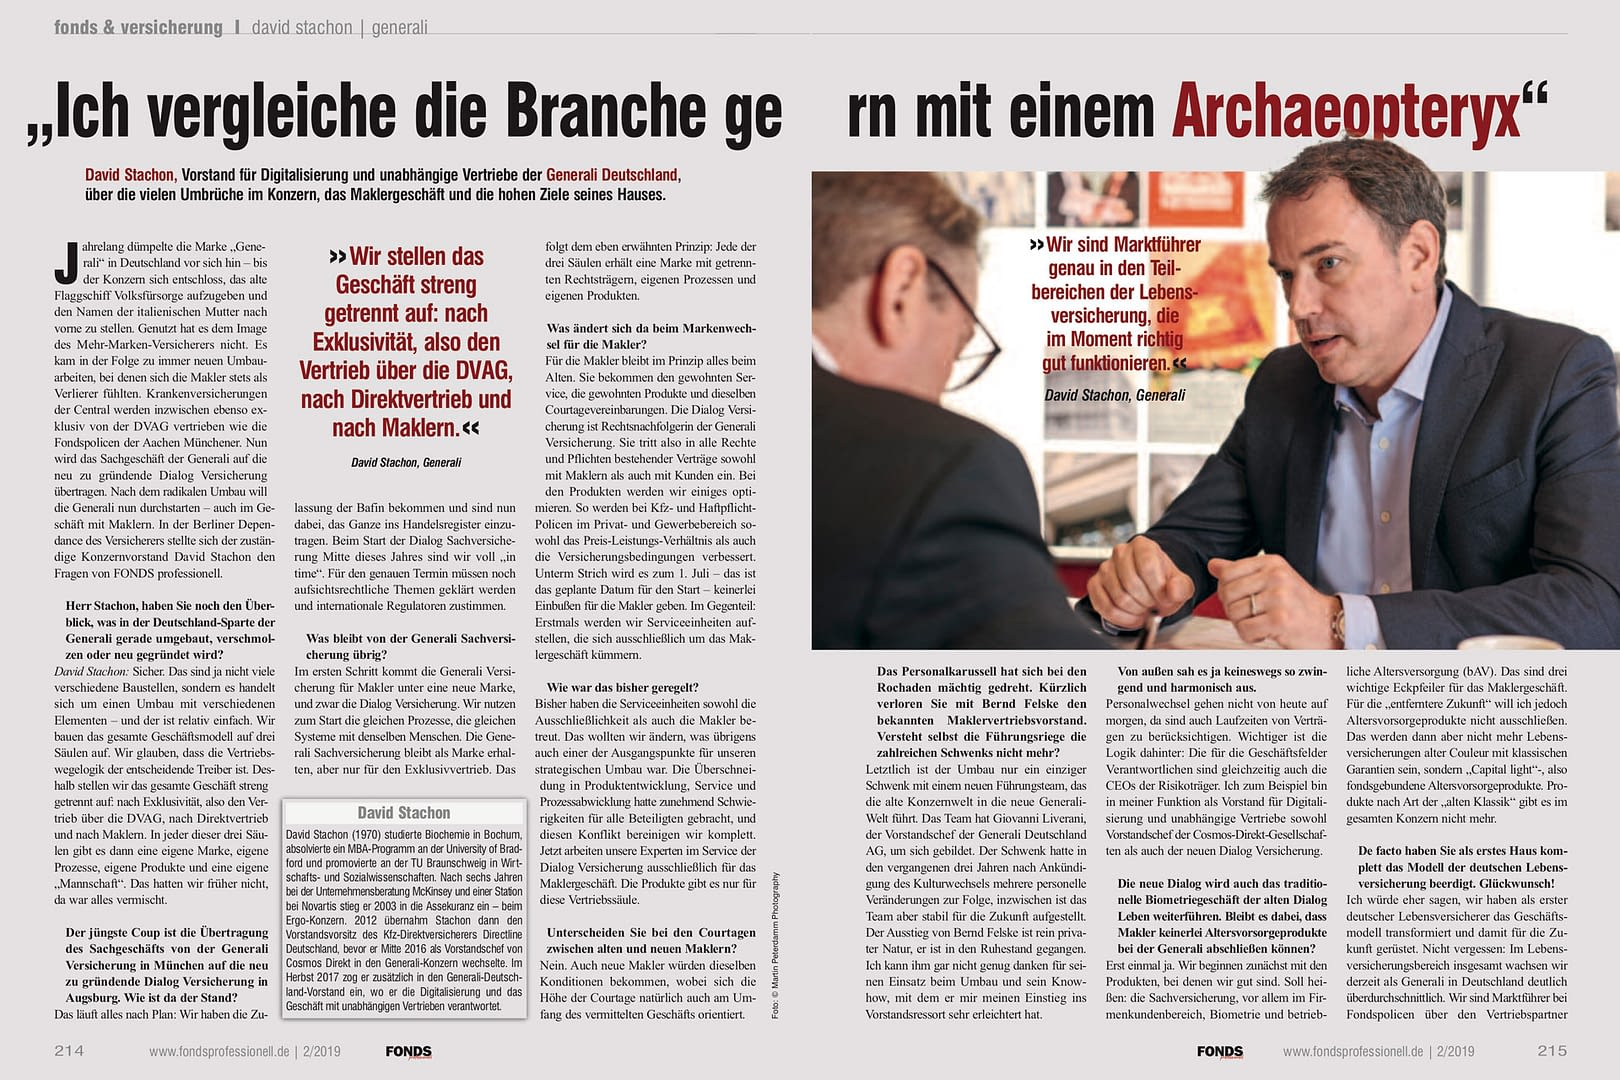 David Stachon Vorstand Generali Deutschland Interview 11